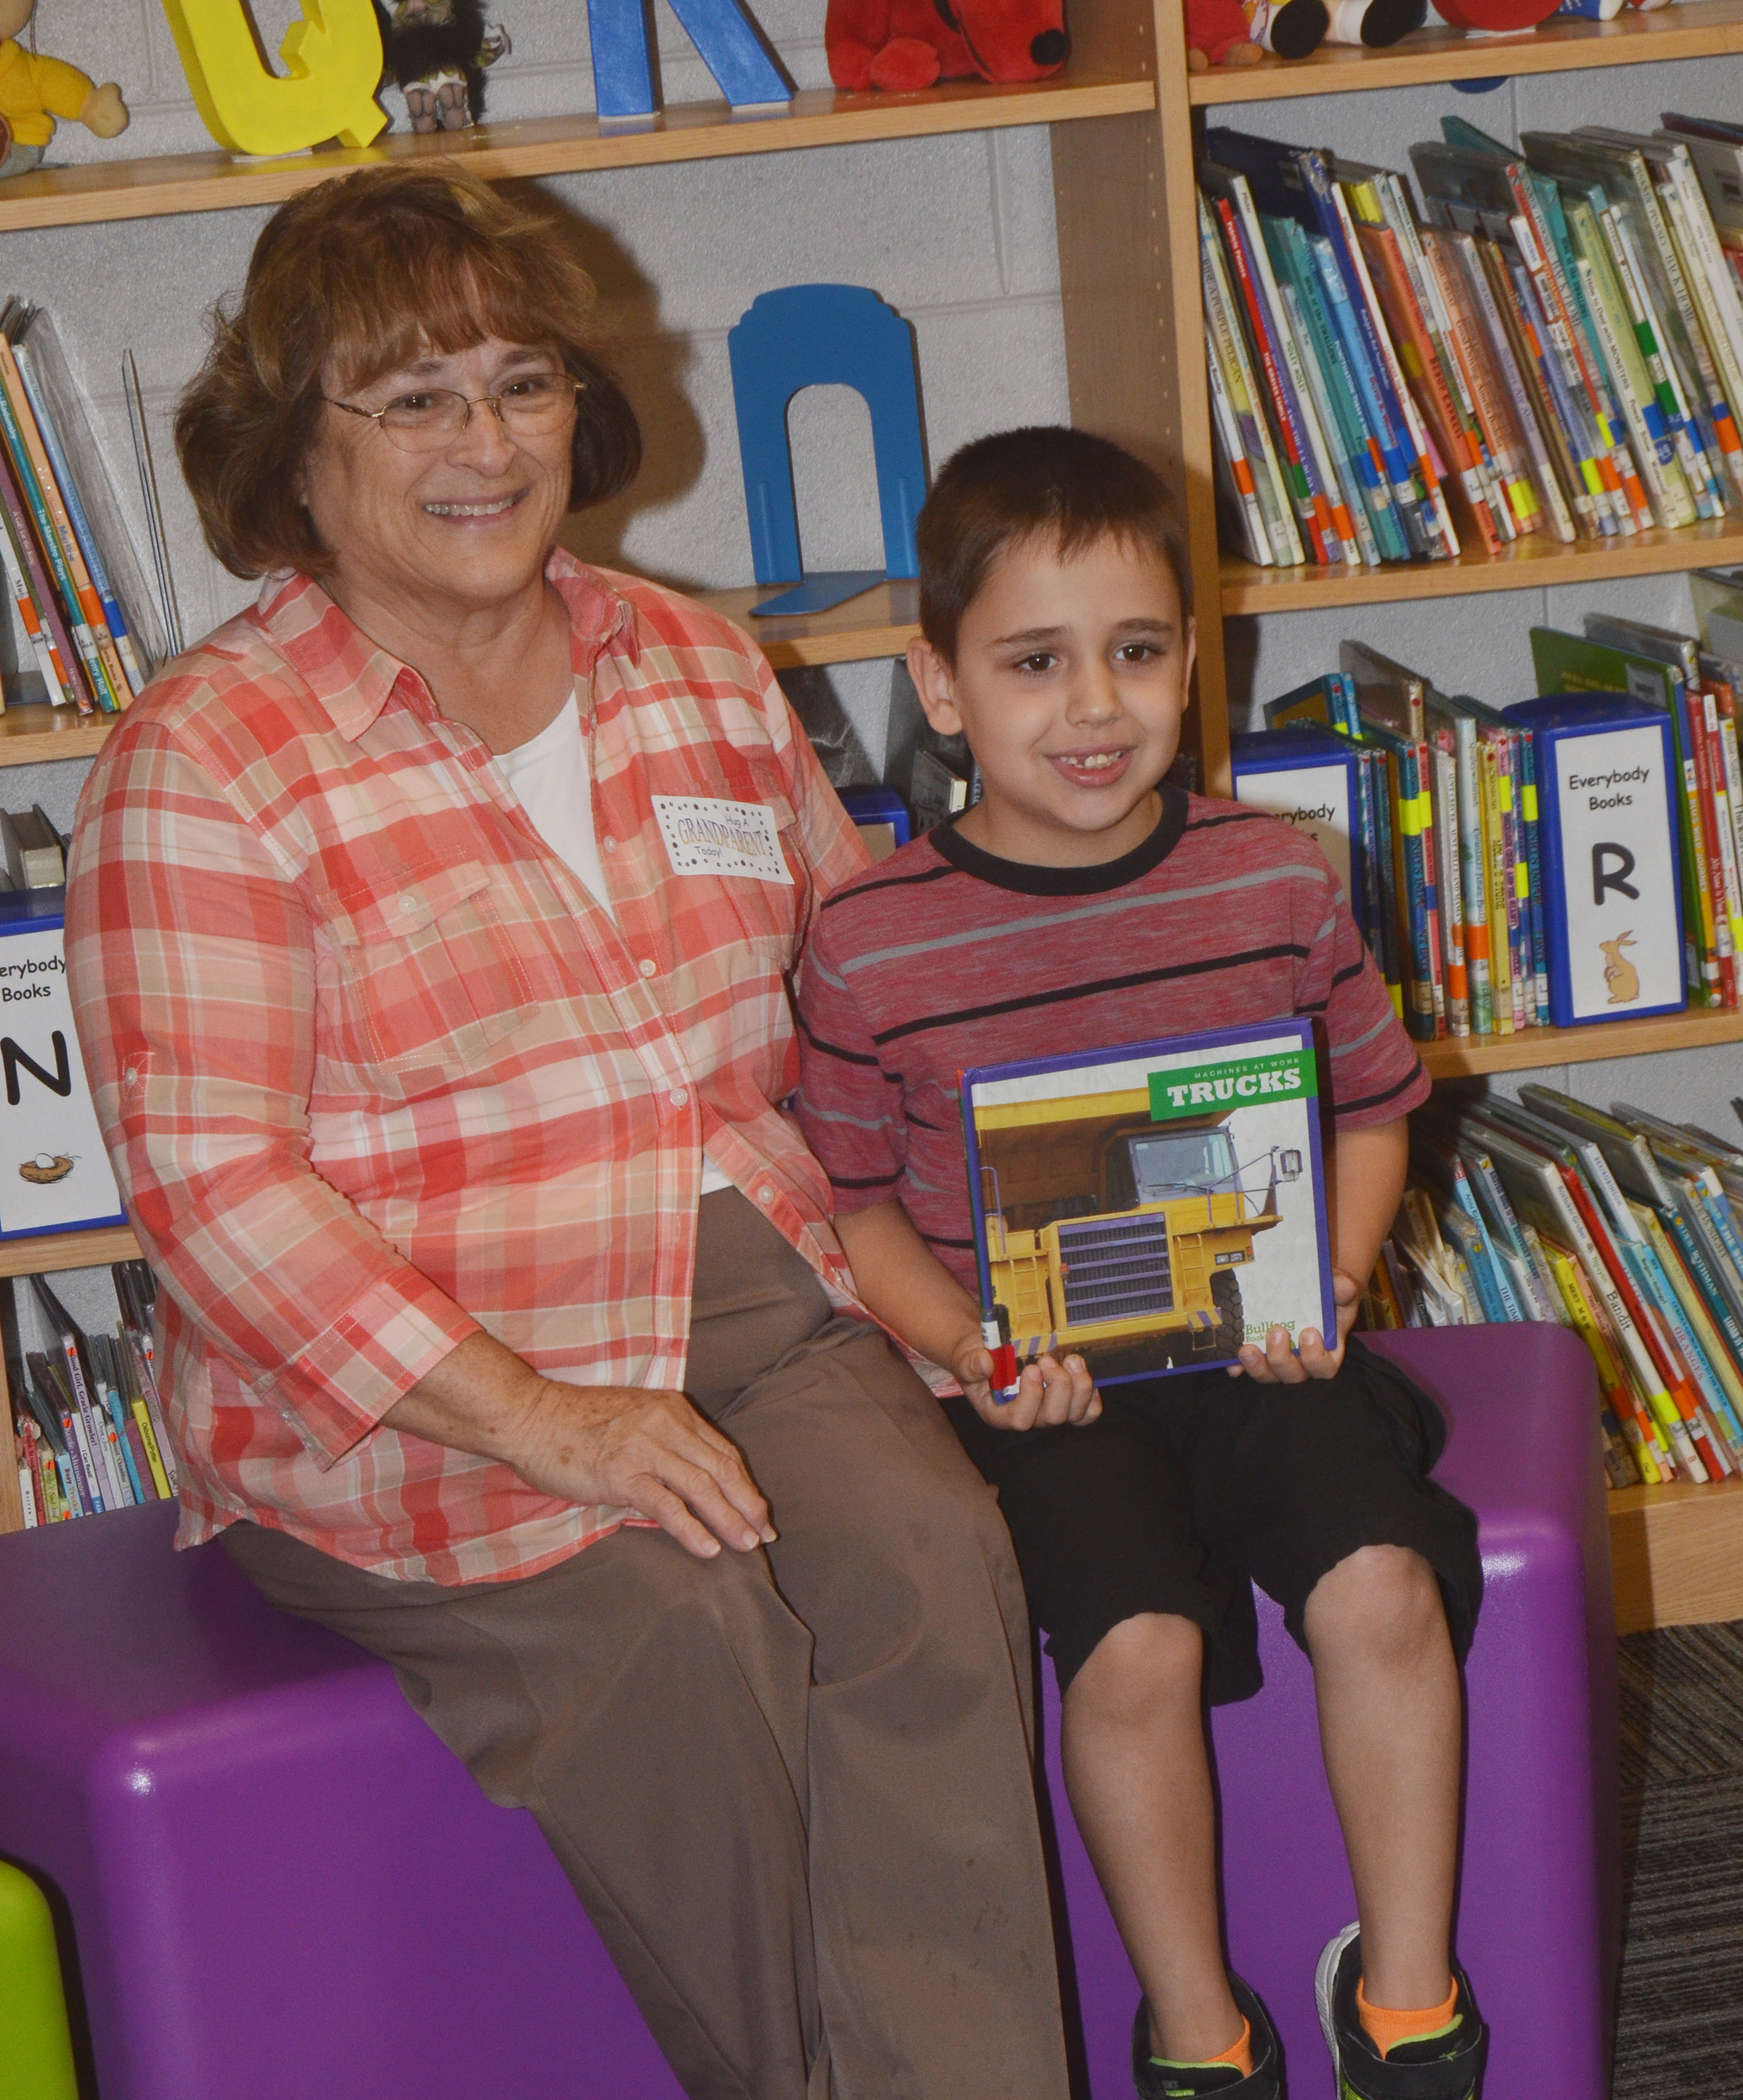 CES second-grader Aaron Floyd poses for a photo with his grandmother.